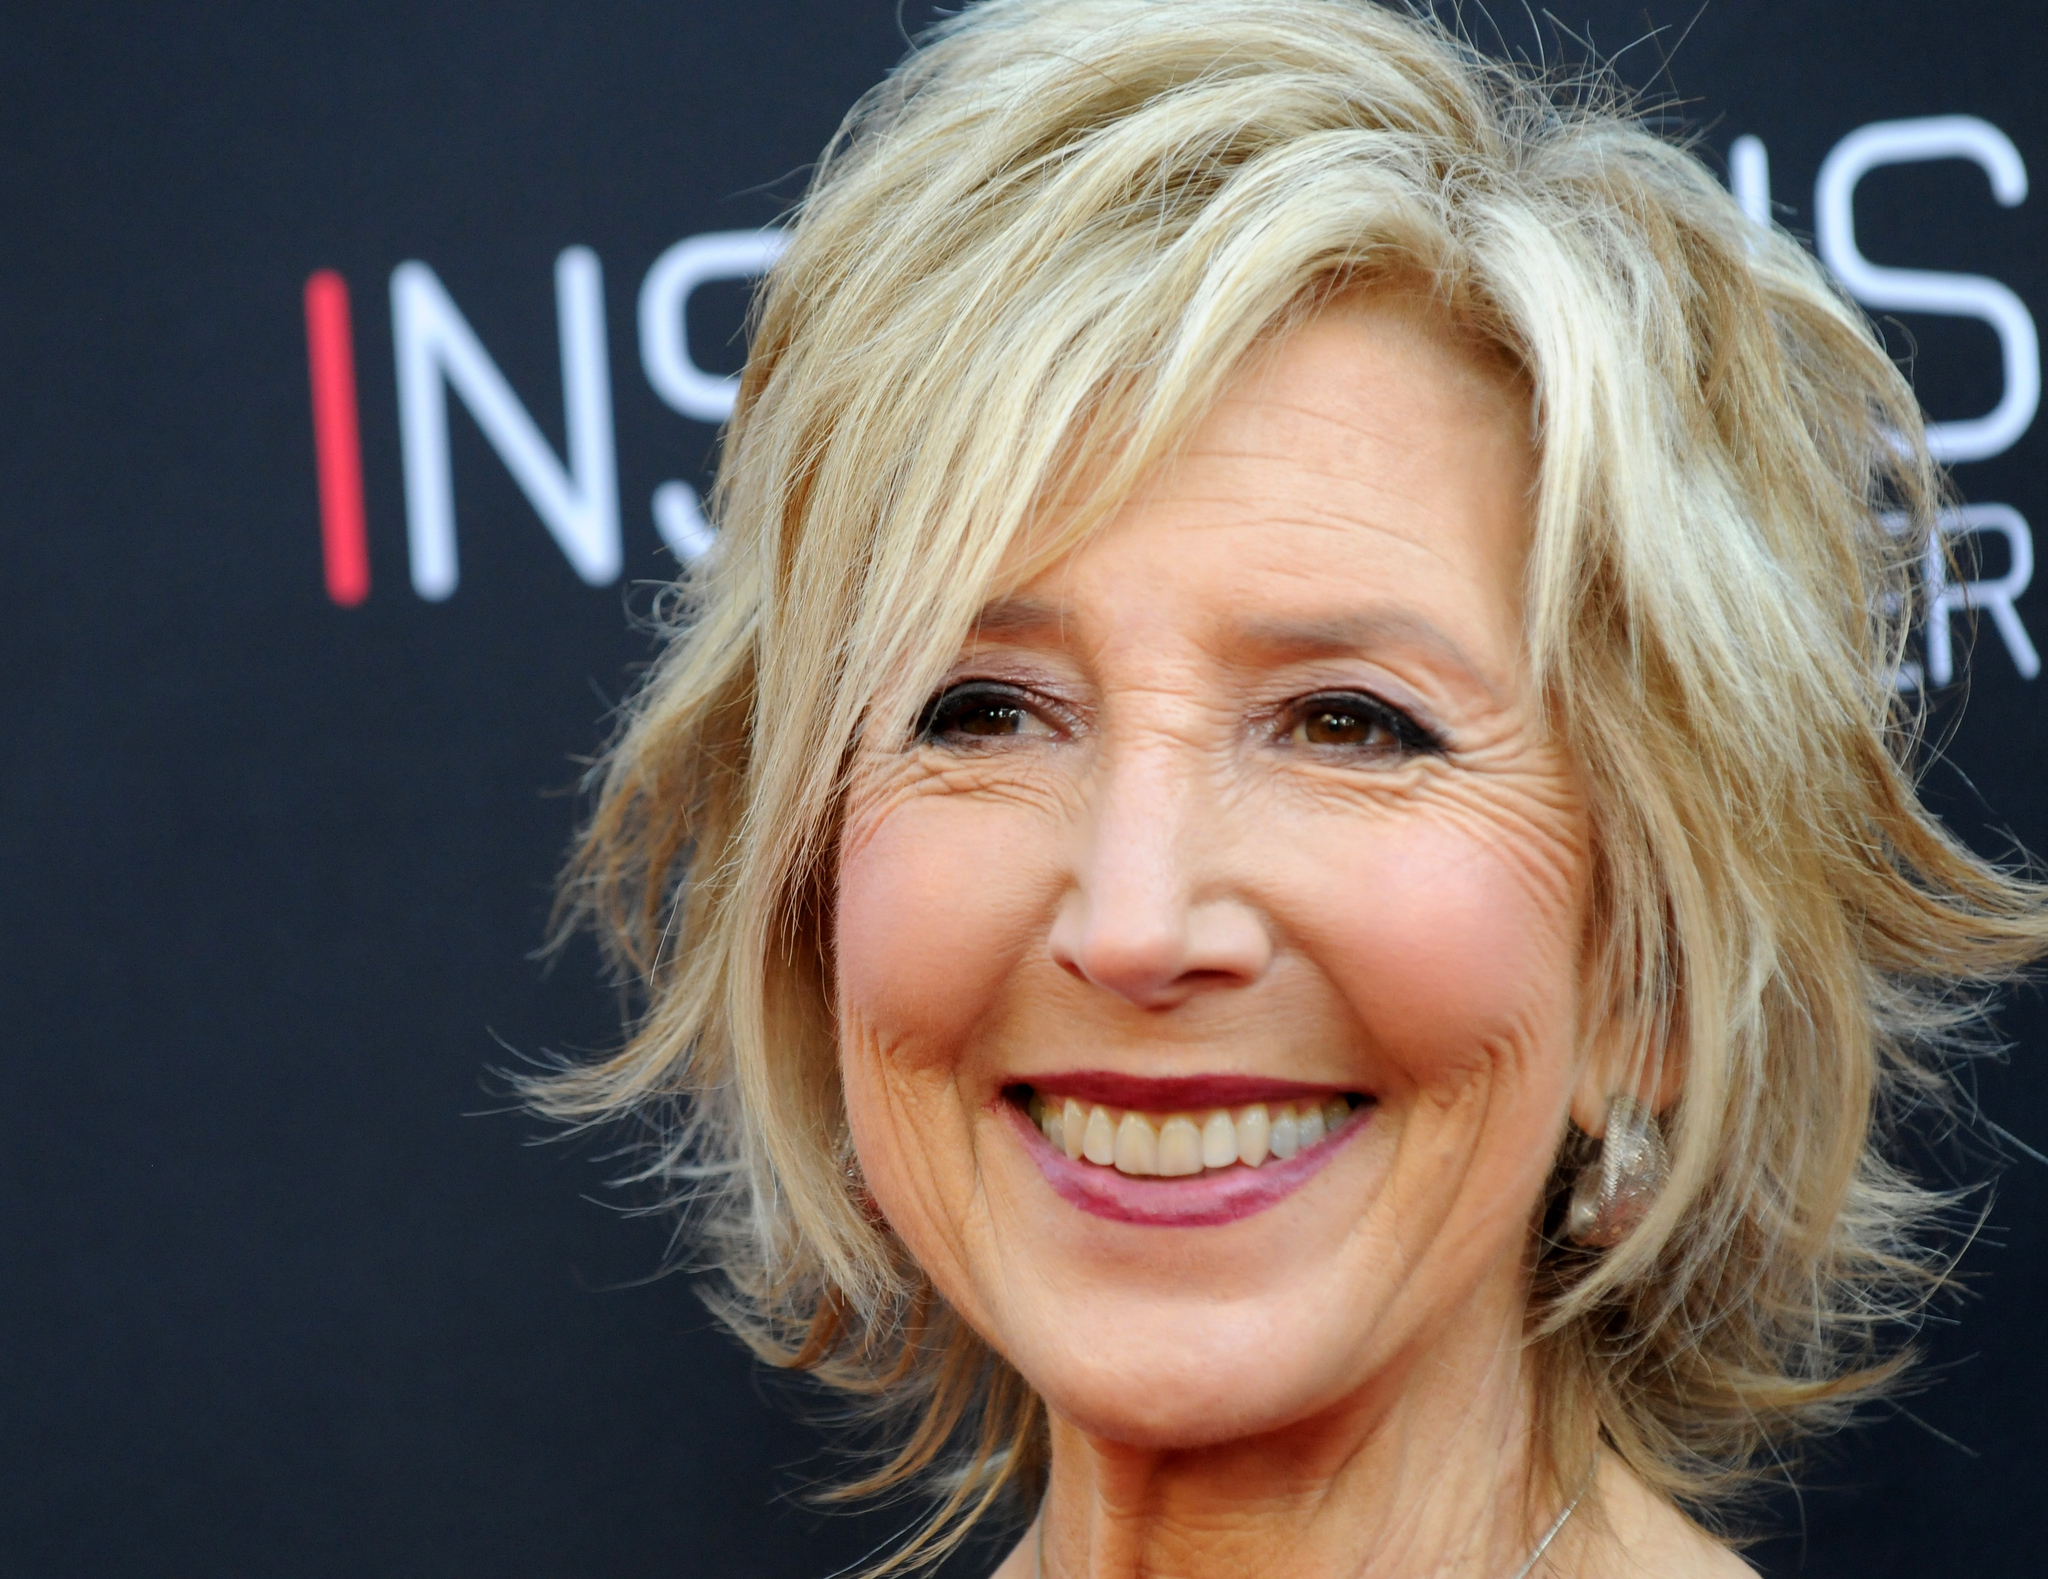 Lin Shaye at an event for Insidious: Chapter 3 (2015)